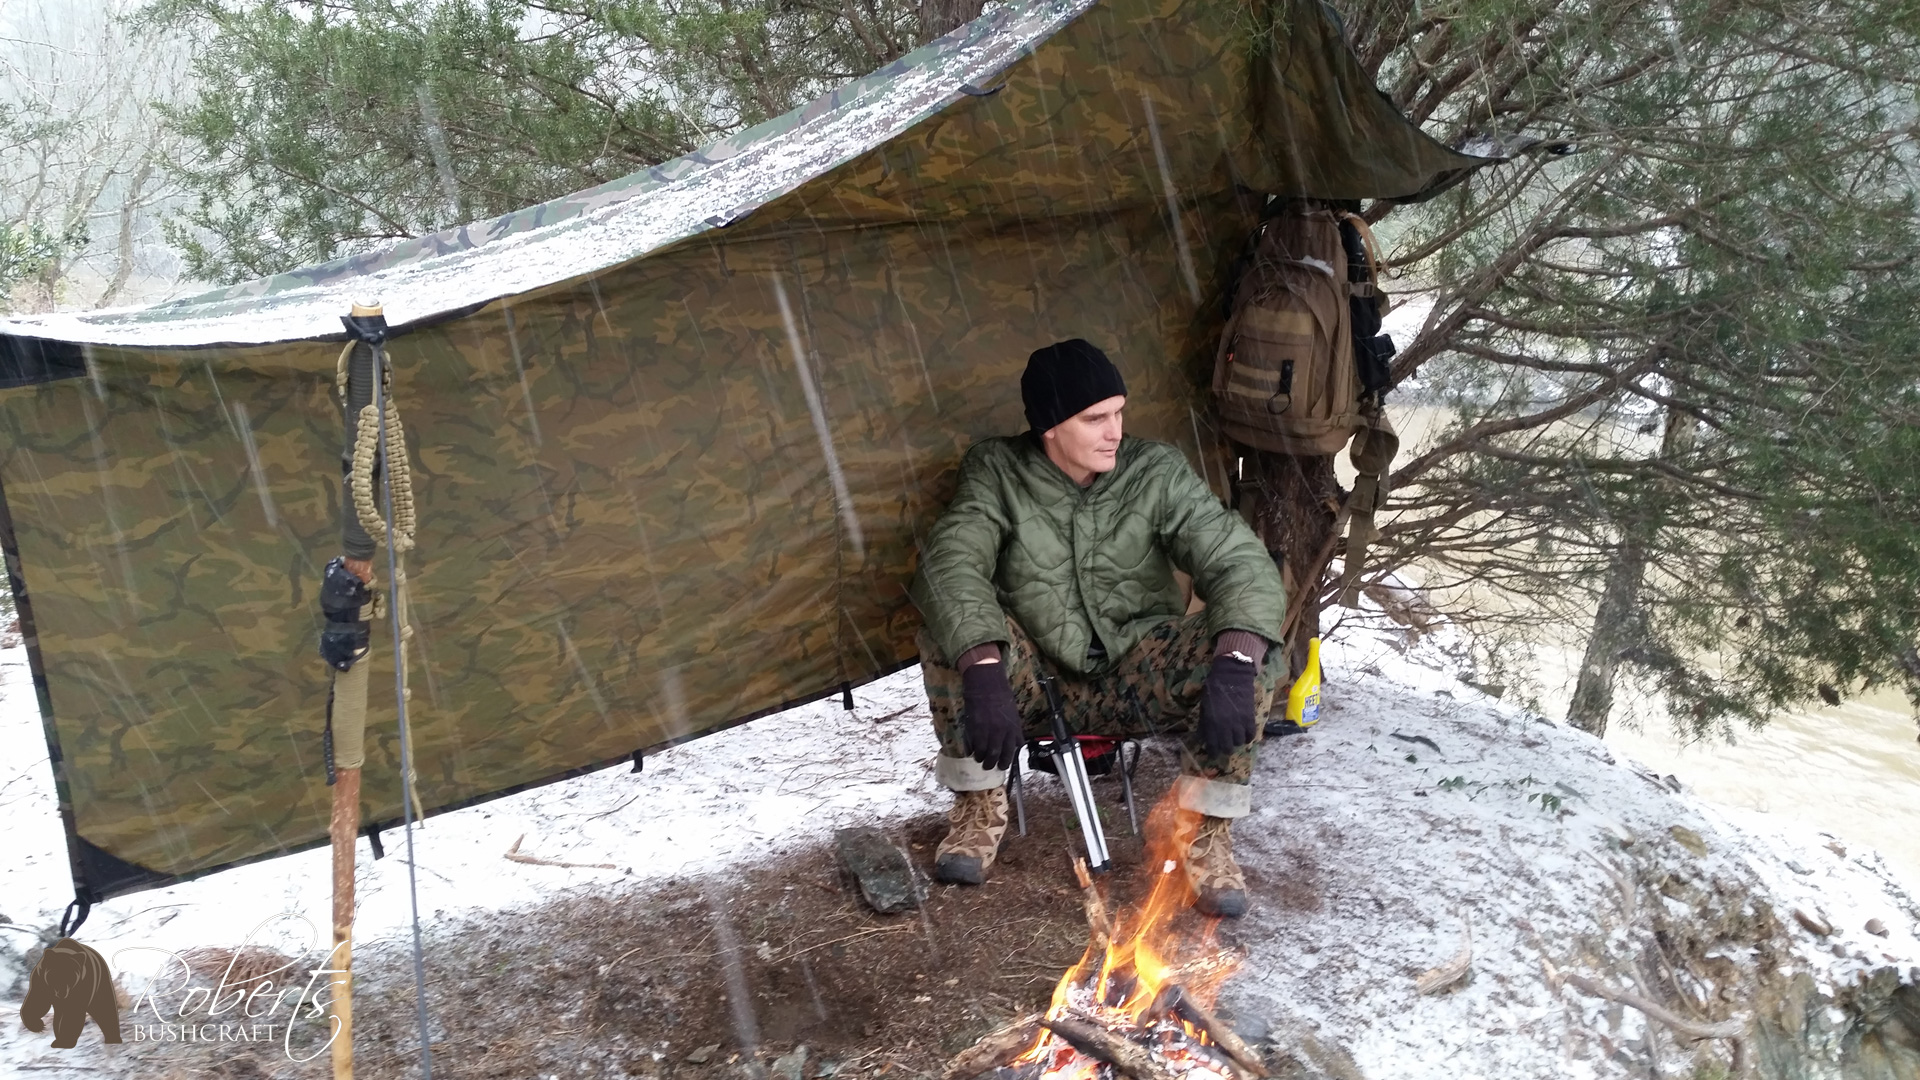 Curry Roberts of Roberts Bushcraft shelters under his Aqua Quest Defender tarp